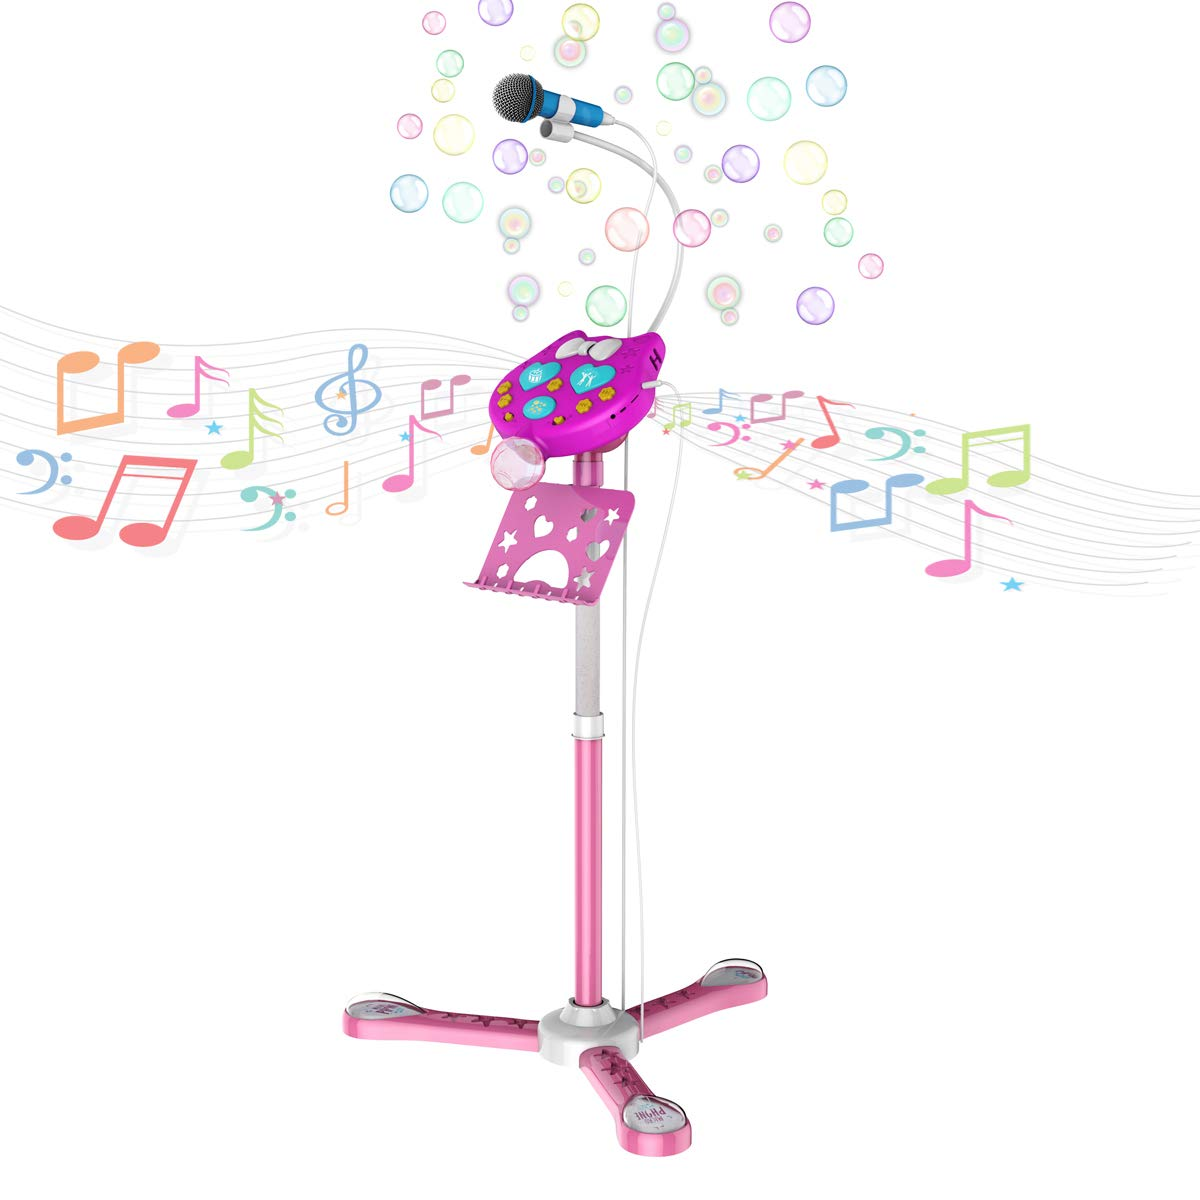 TiMi Tree Kids Karaoke Machine with Stand, Bubble Blowing Built-in, Toys for Girls Age 3 - 7, Creative Birthday Gift Idea for 4 Years Old Girls (2 Microphones Supported, 1 Included)